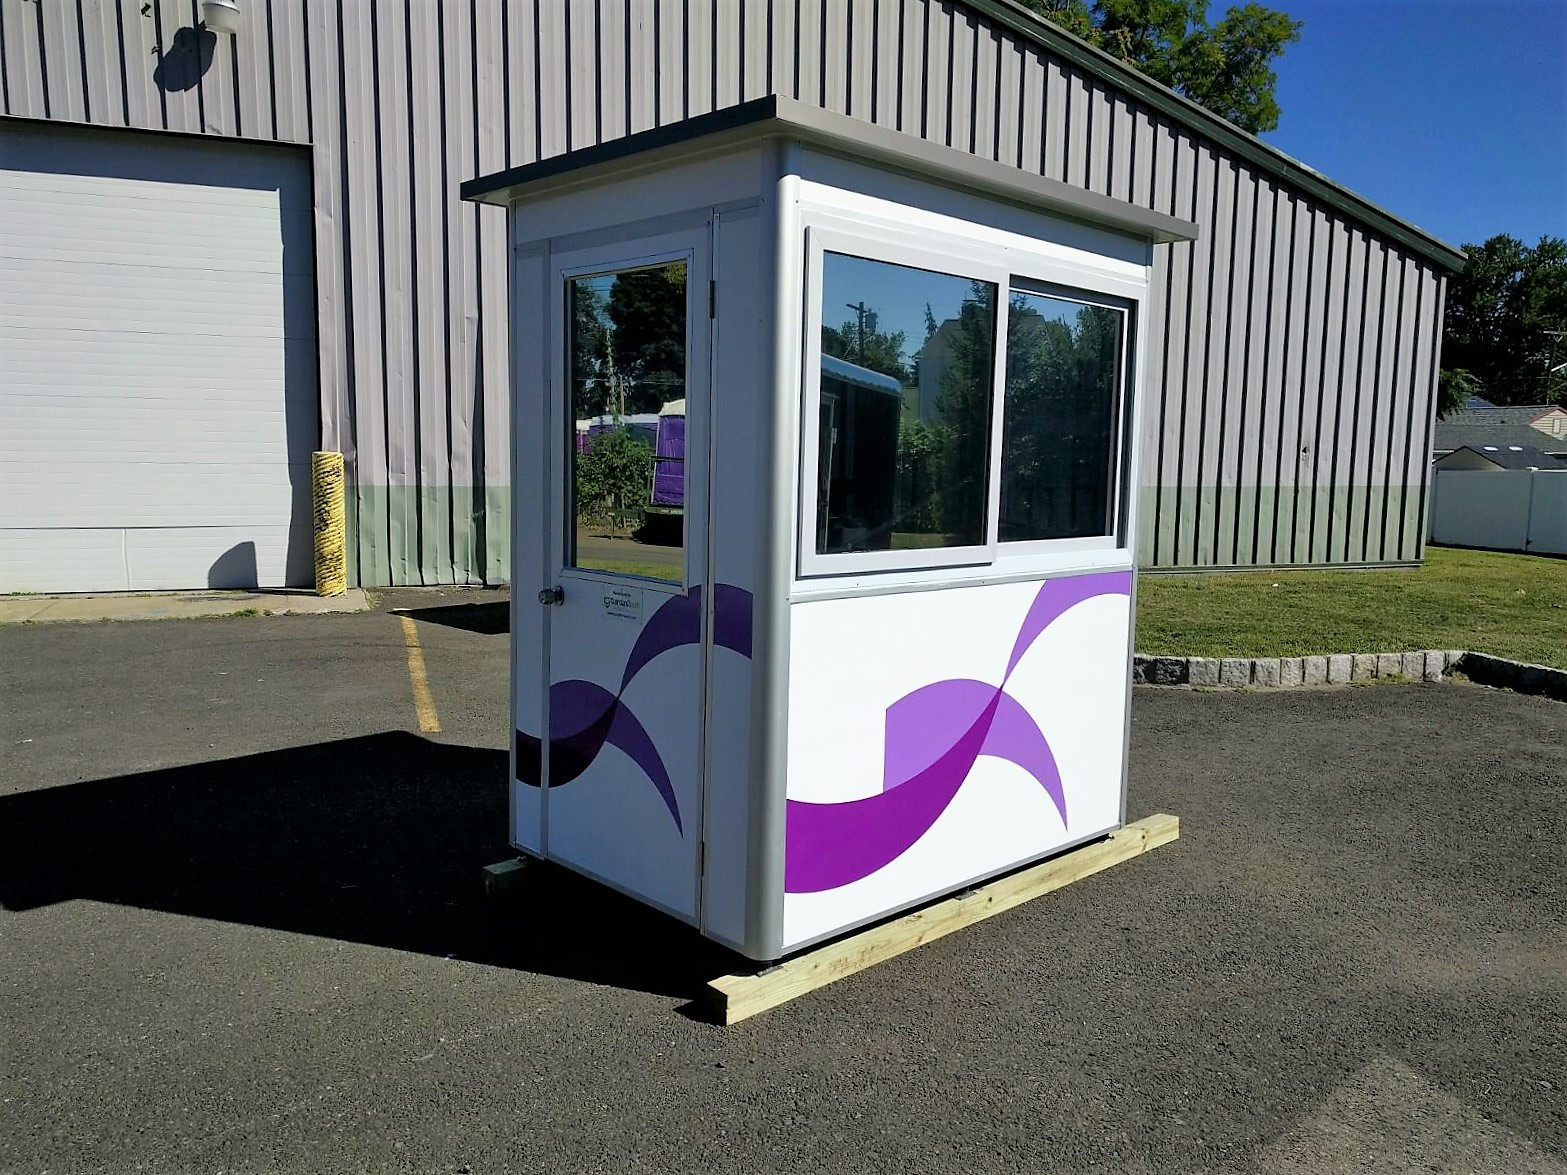 4x6 Security Guard Booth in Tyler,TX with Custom Exterior Color, Swing Door, and Sliding Windows